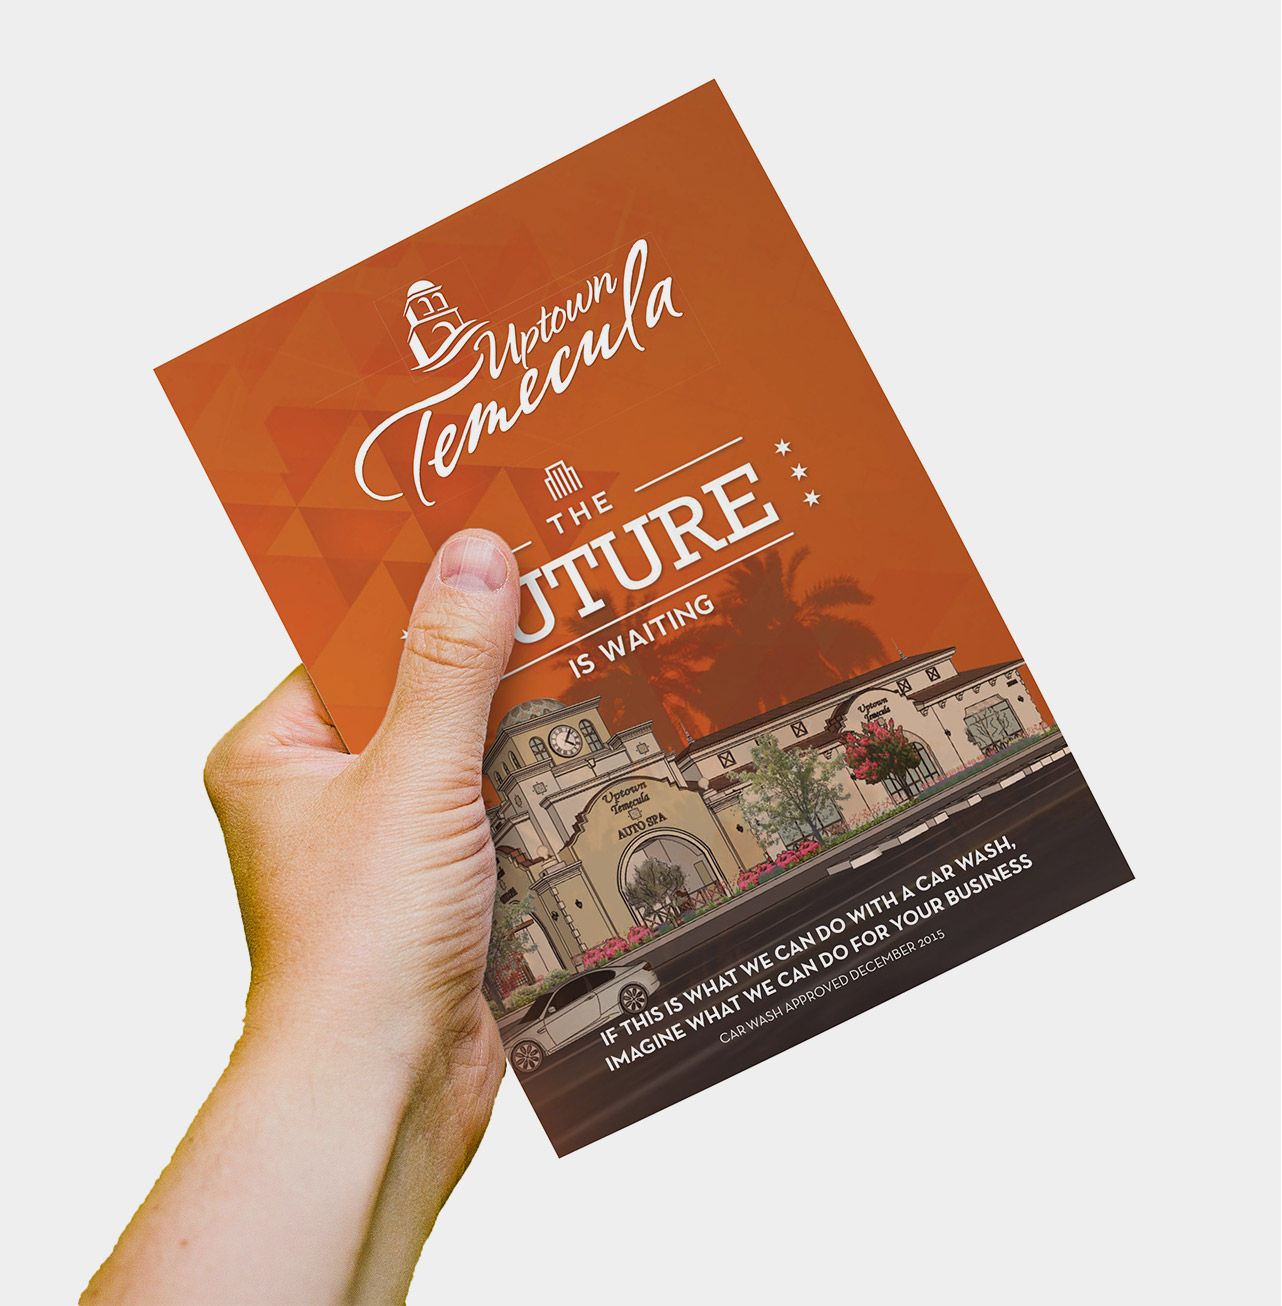 Uptown Temecula booklet